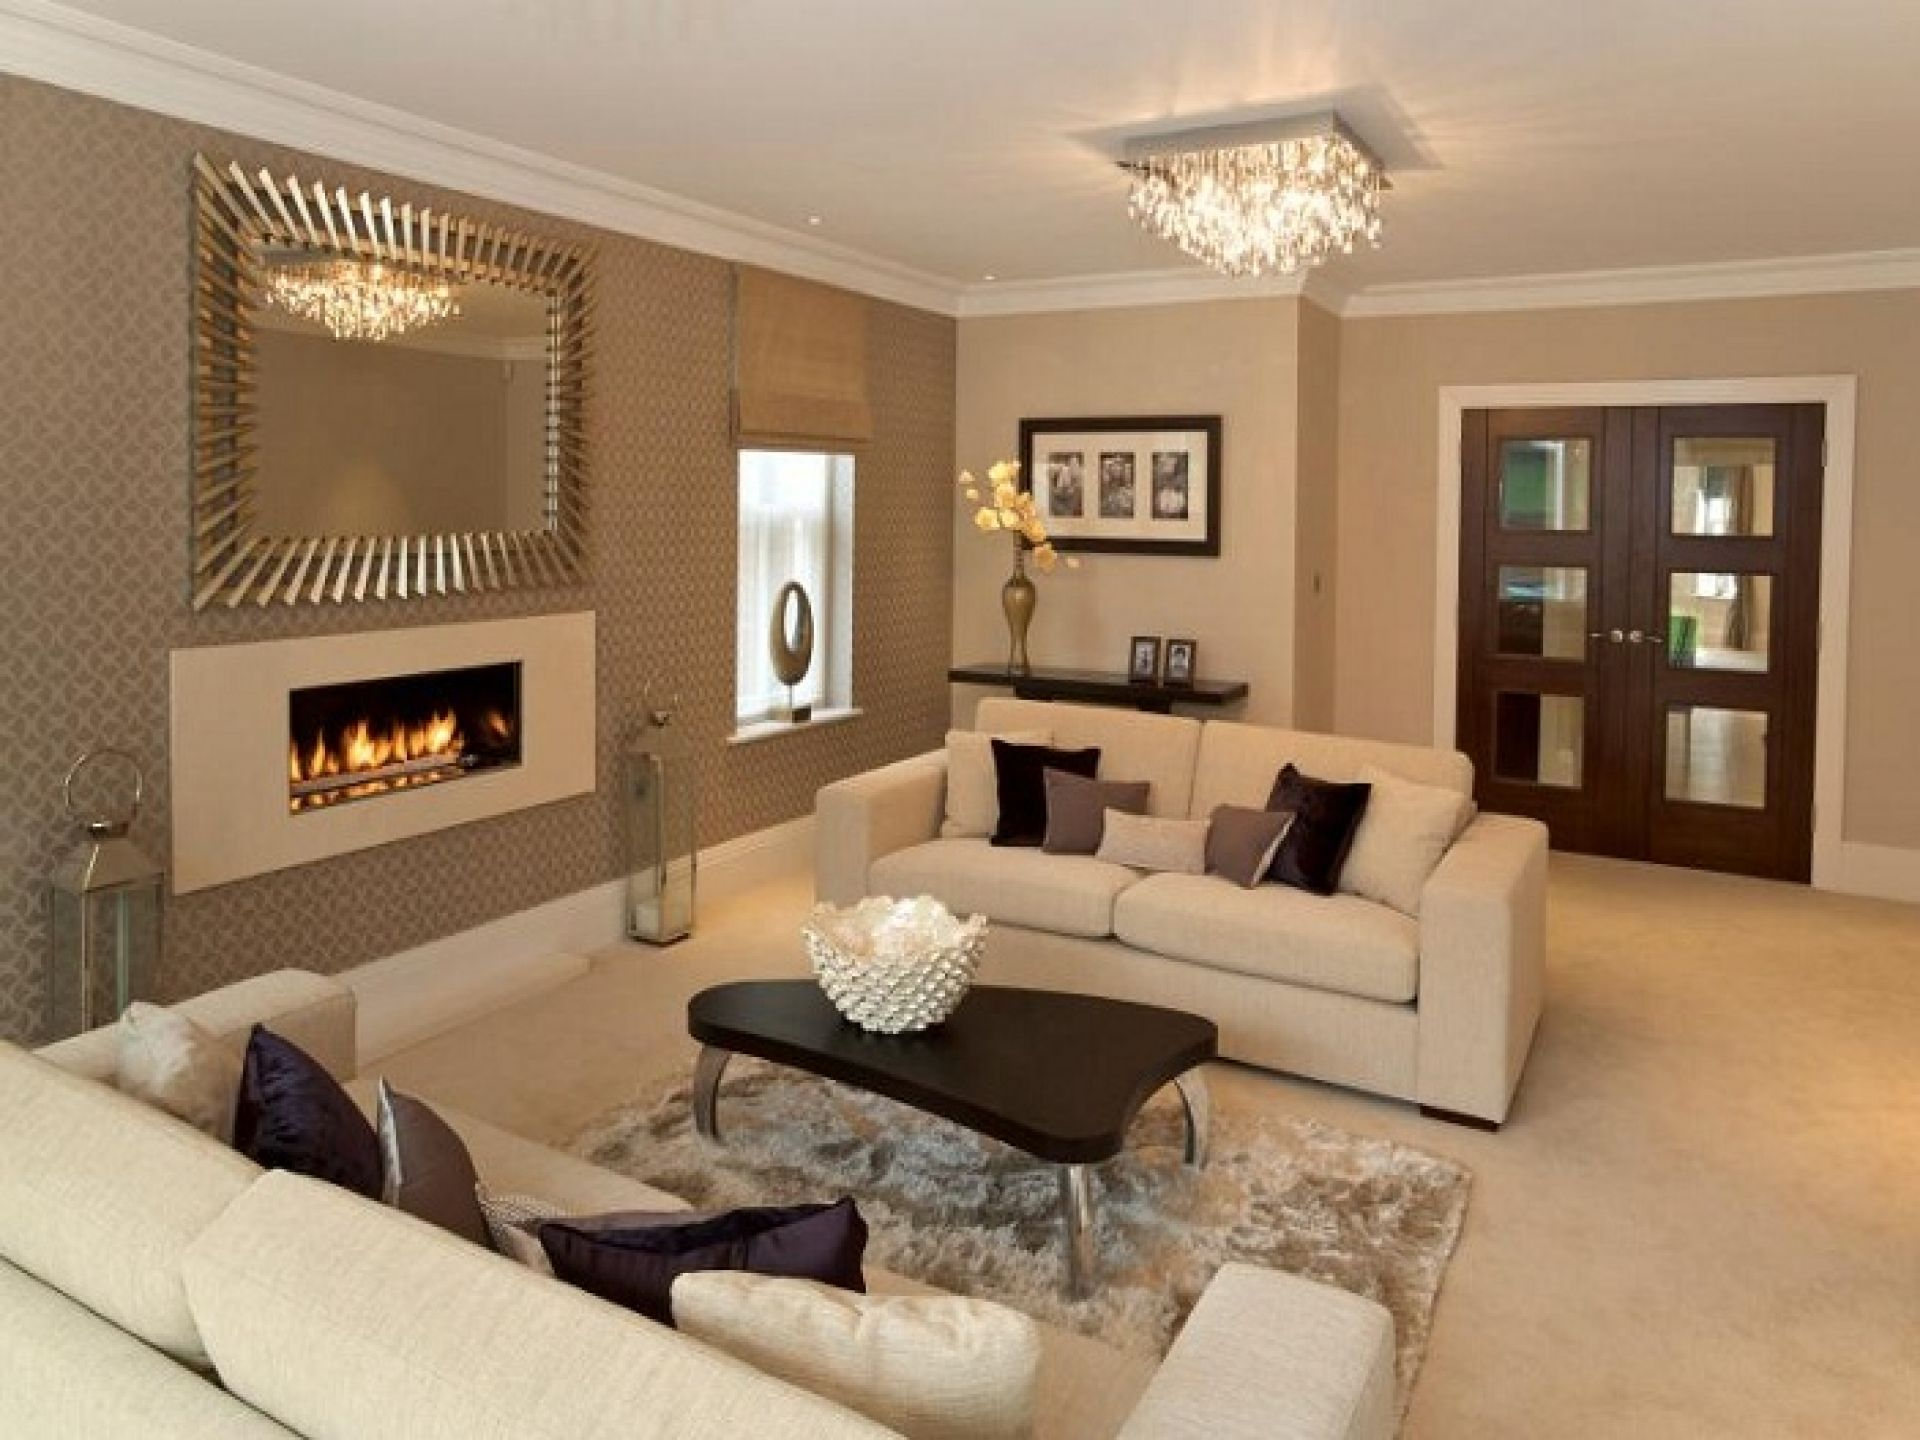 15 exclusive living room ideas for the perfect home | brown paint